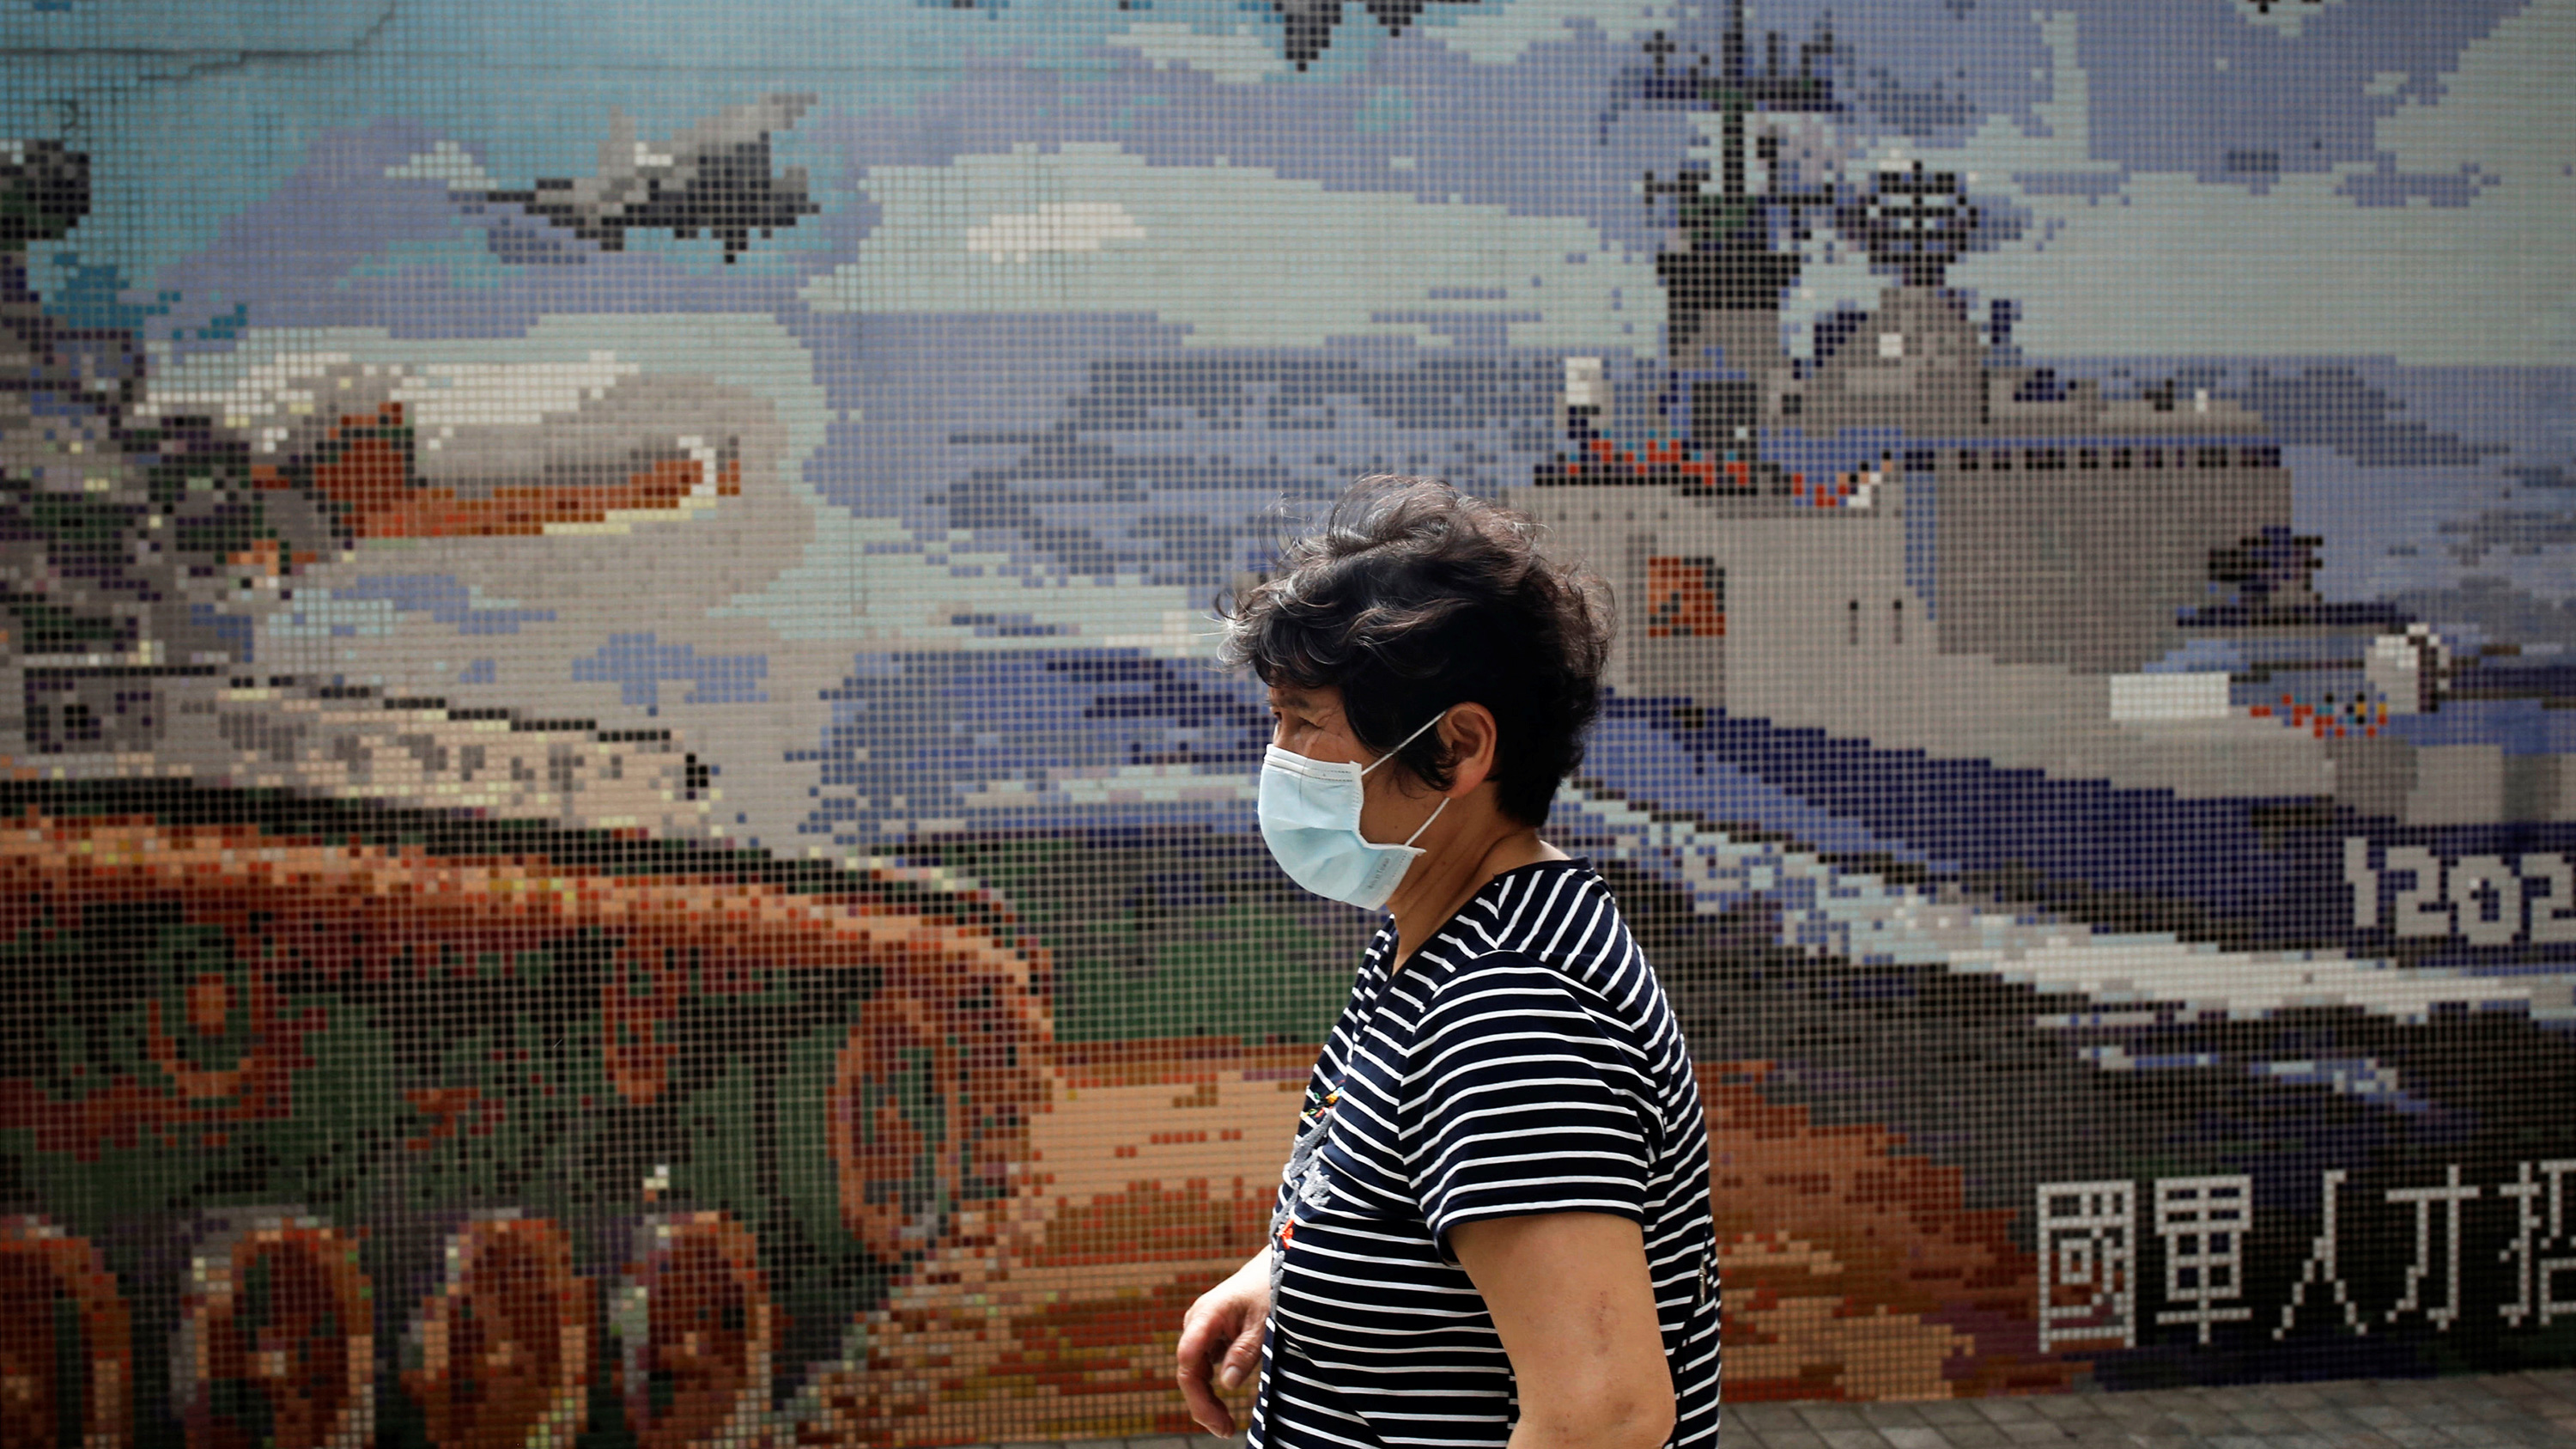 The photo shows a woman in a mask walking past a stylized poster showing war tanks, ships and planes.